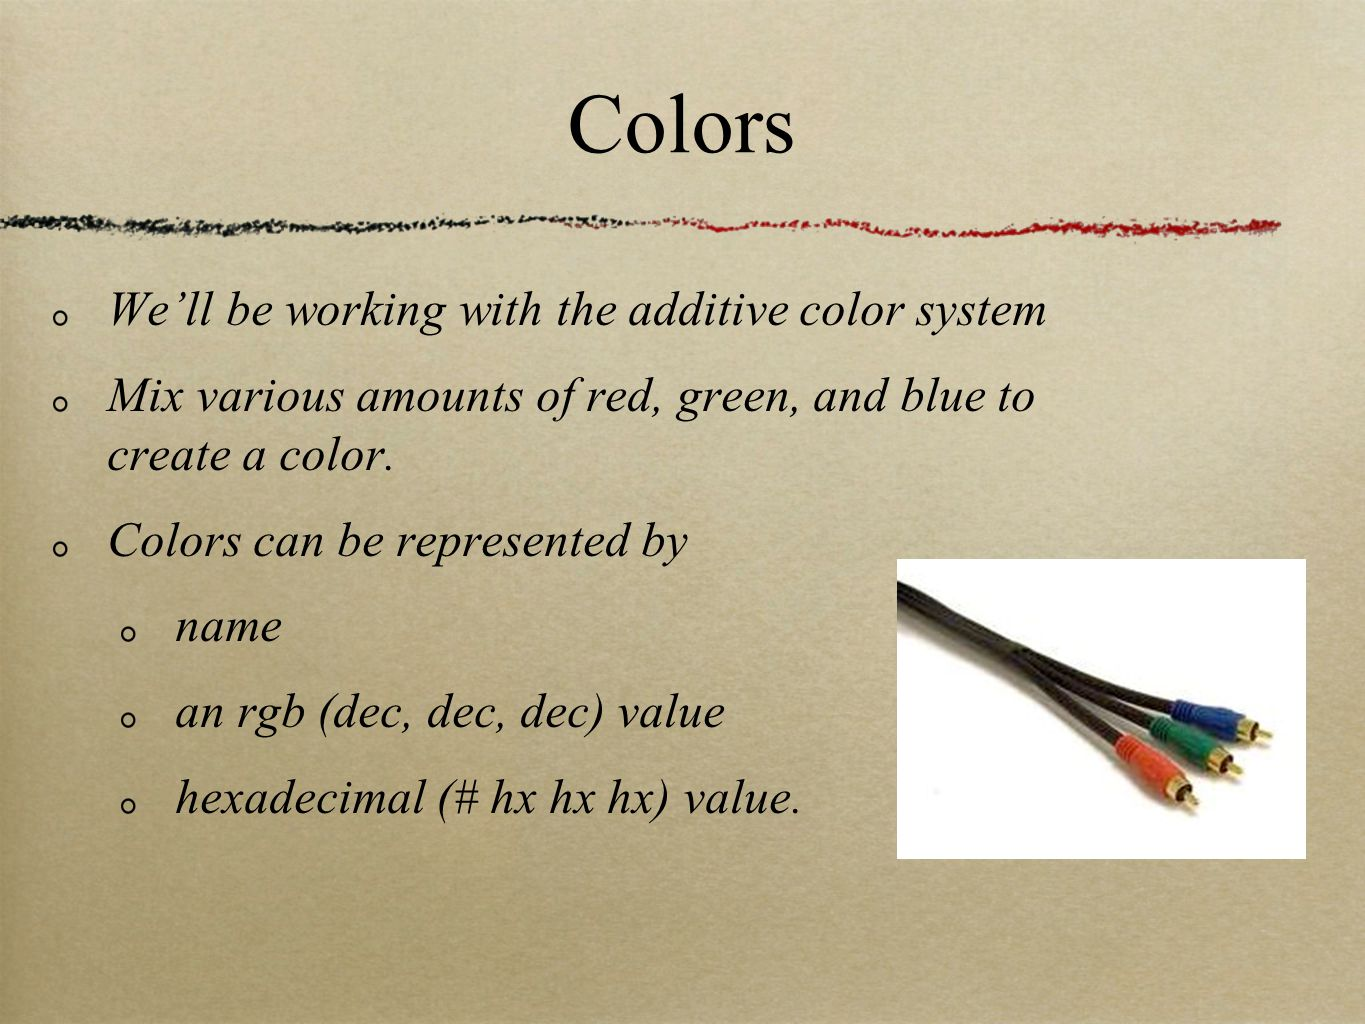 Colors We'll be working with the additive color system Mix various amounts of red, green, and blue to create a color.